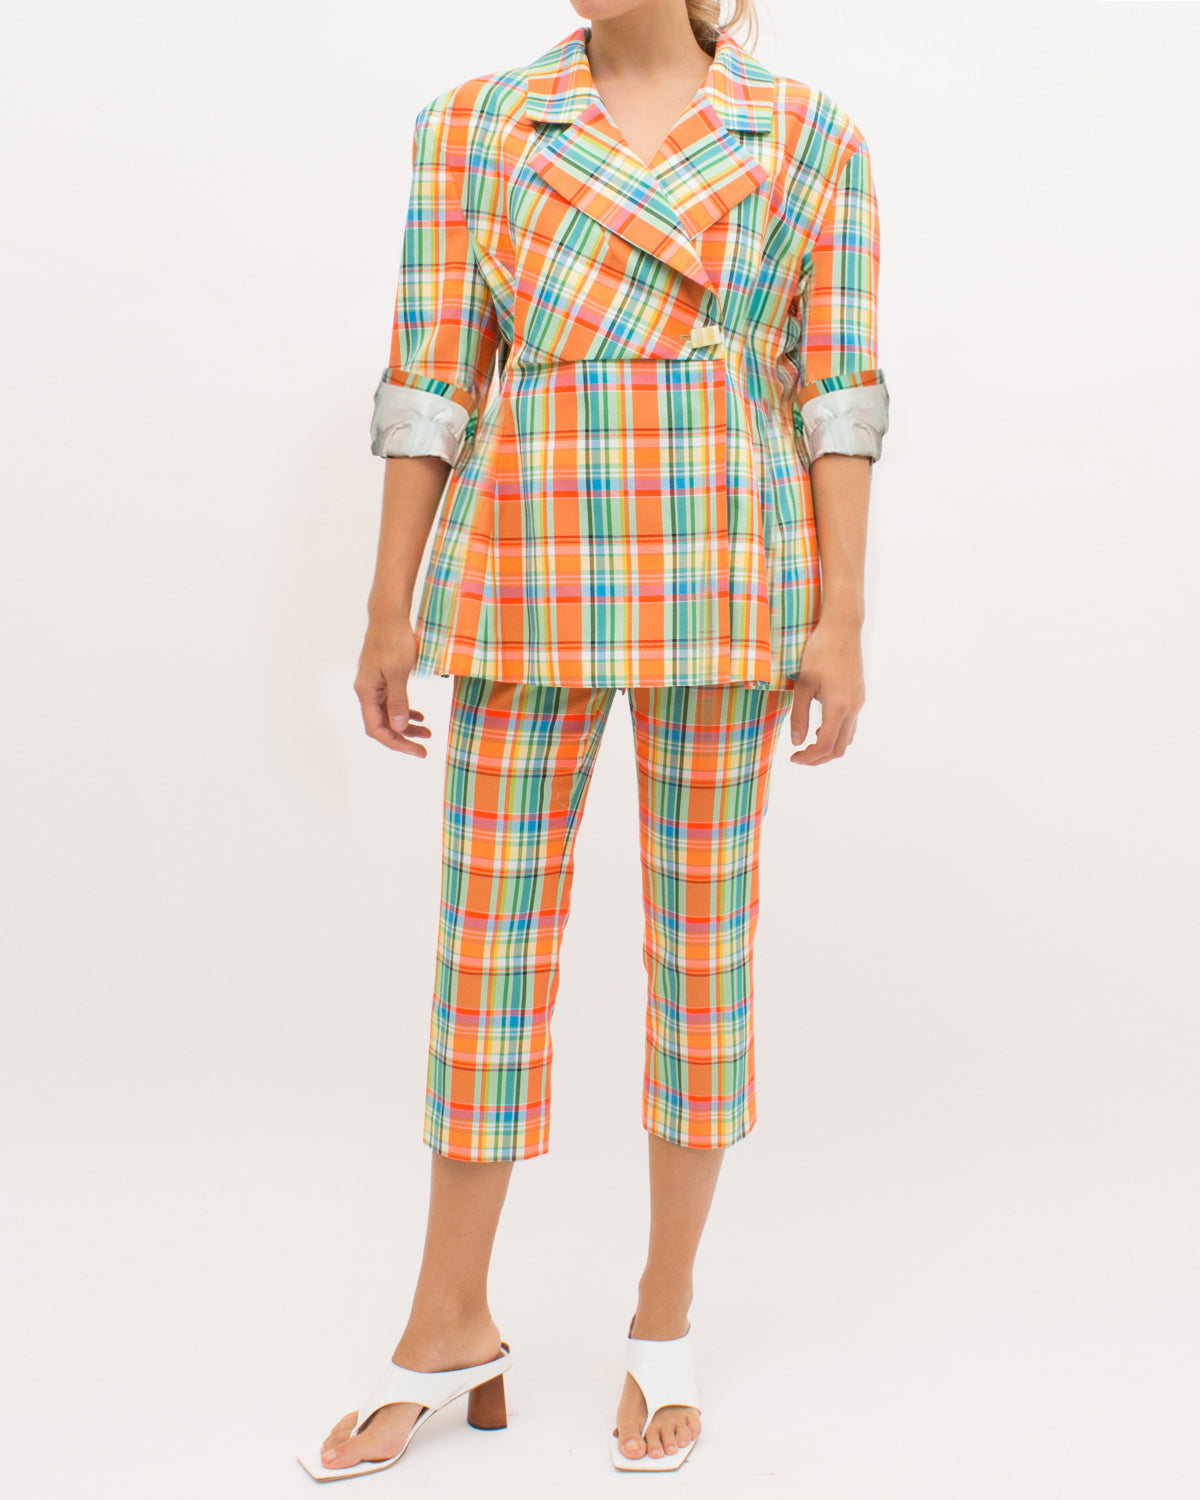 Jodie Jacket Cotton Blend Check Fluo Orange - SPECIAL PRICE